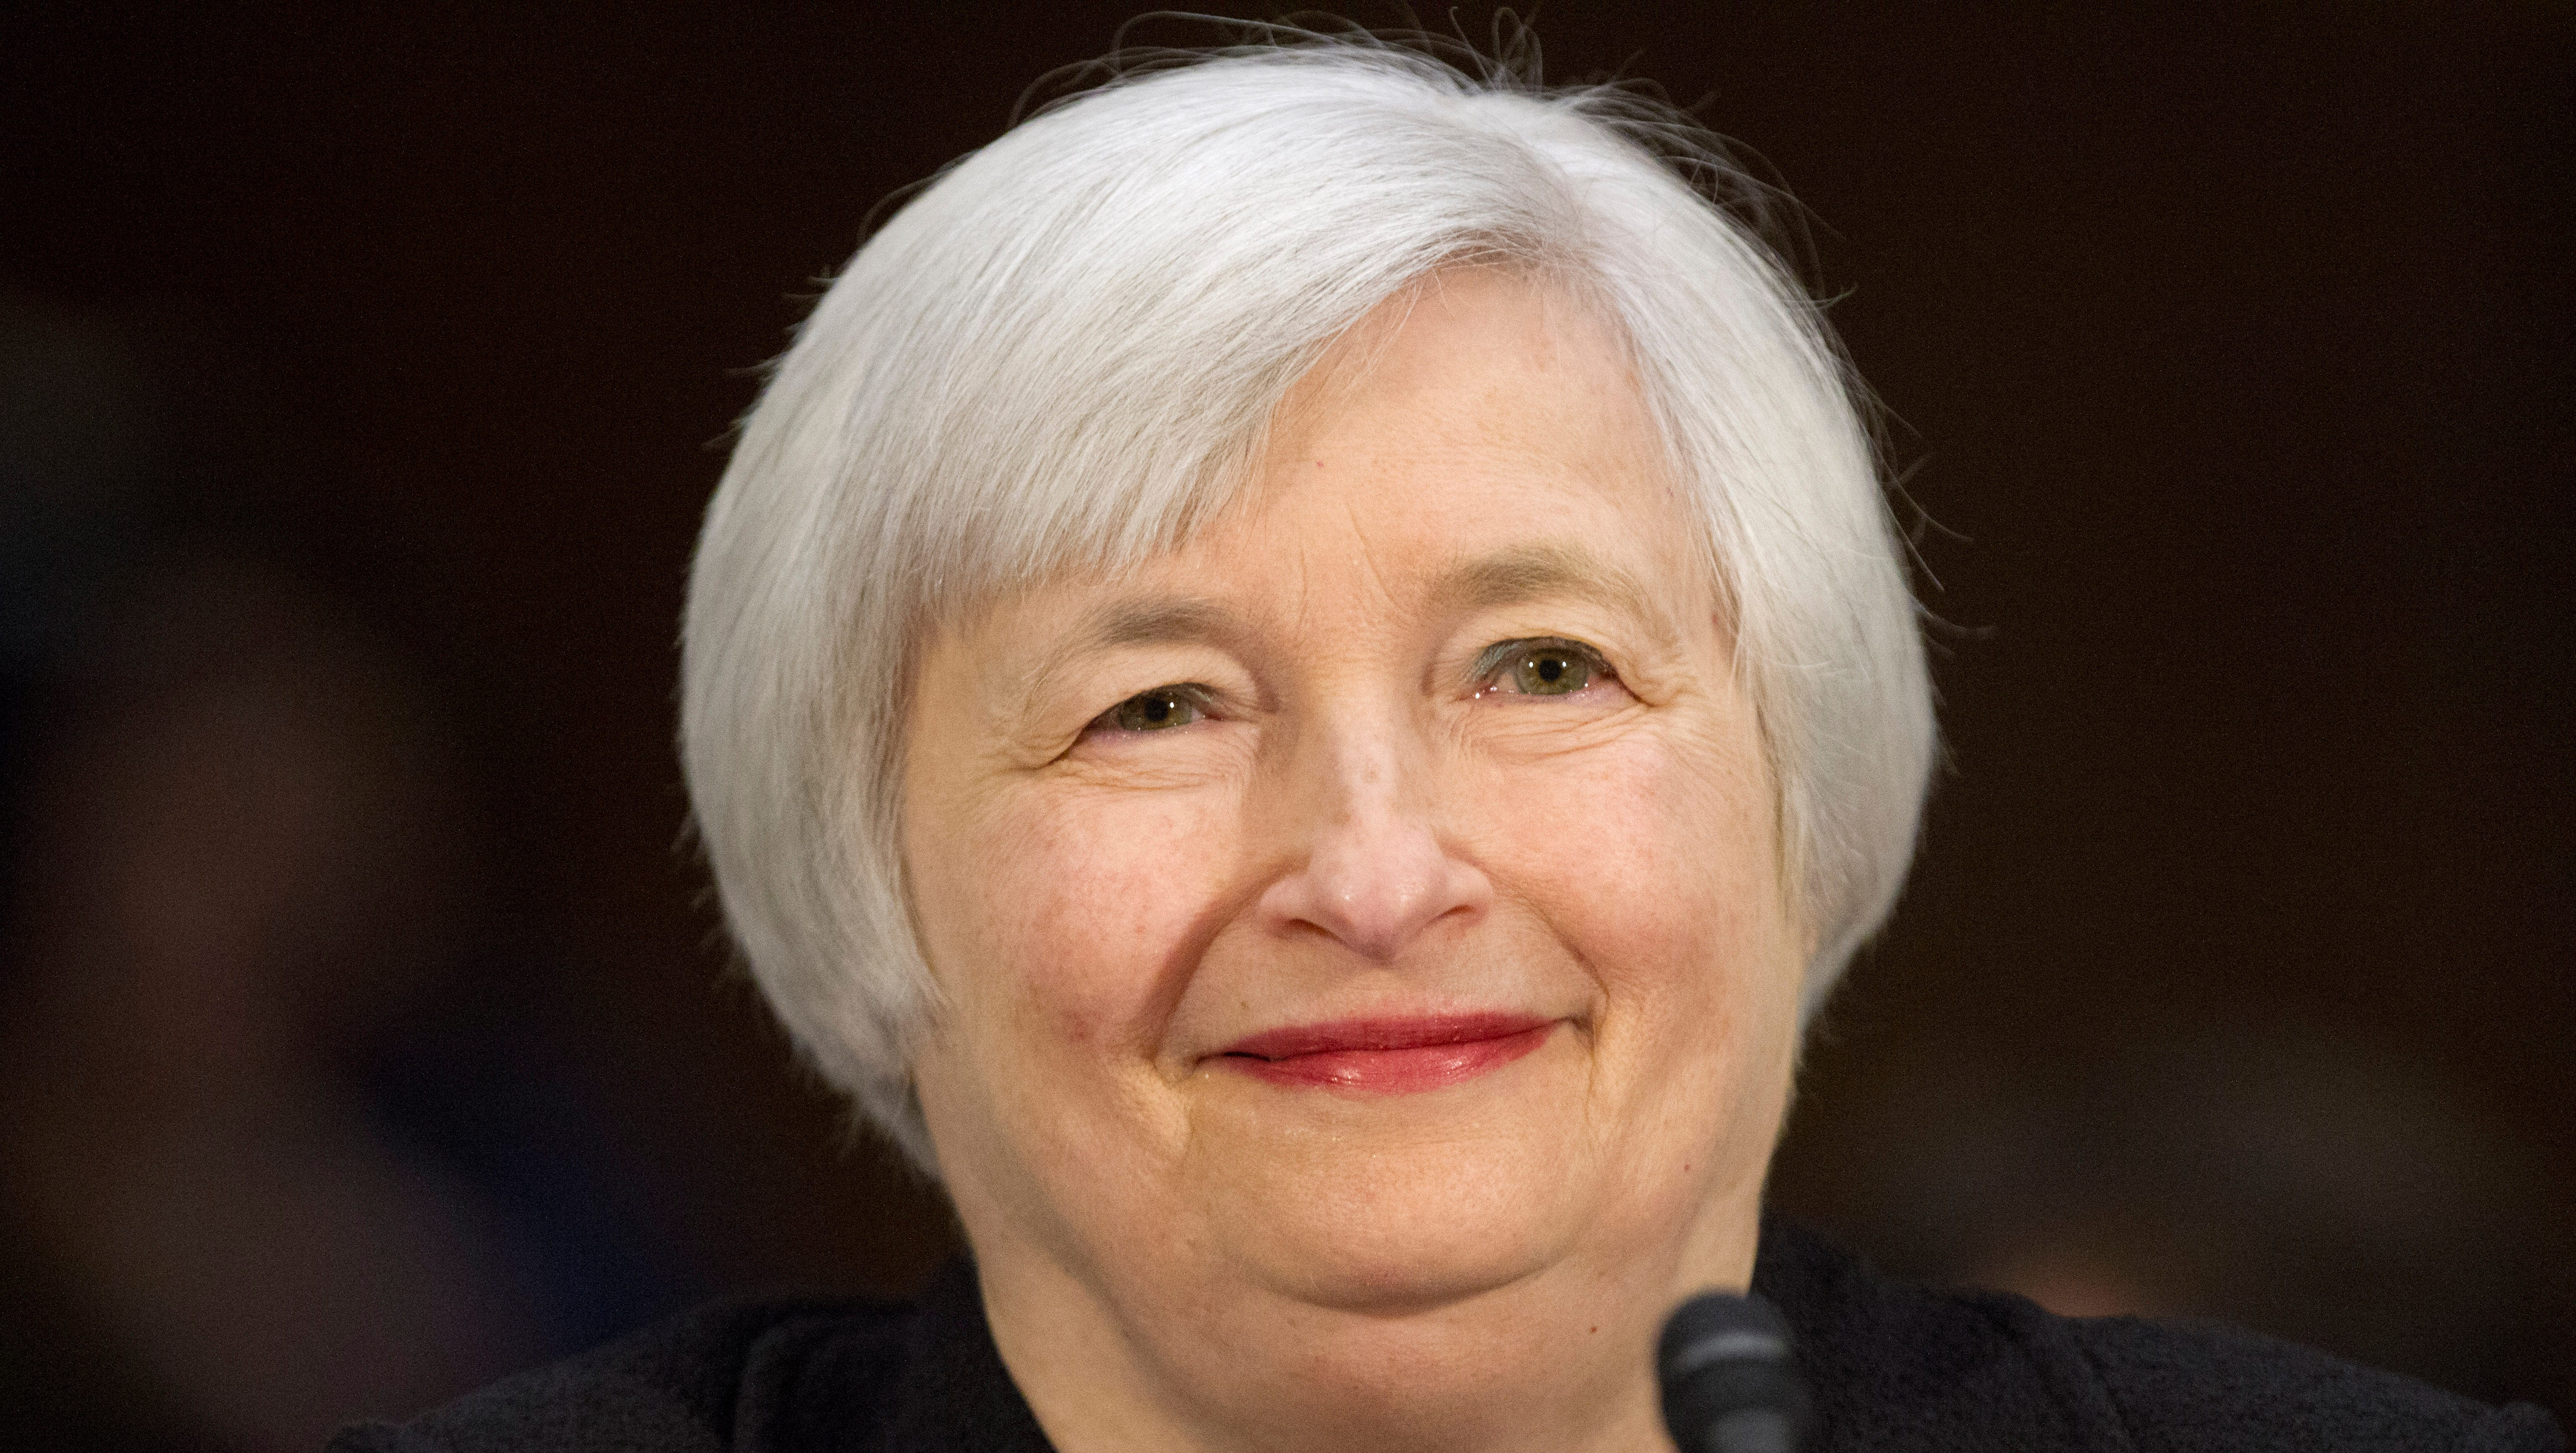 david marsh tests looming for janet yellen david marsh tests looming for janet yellen